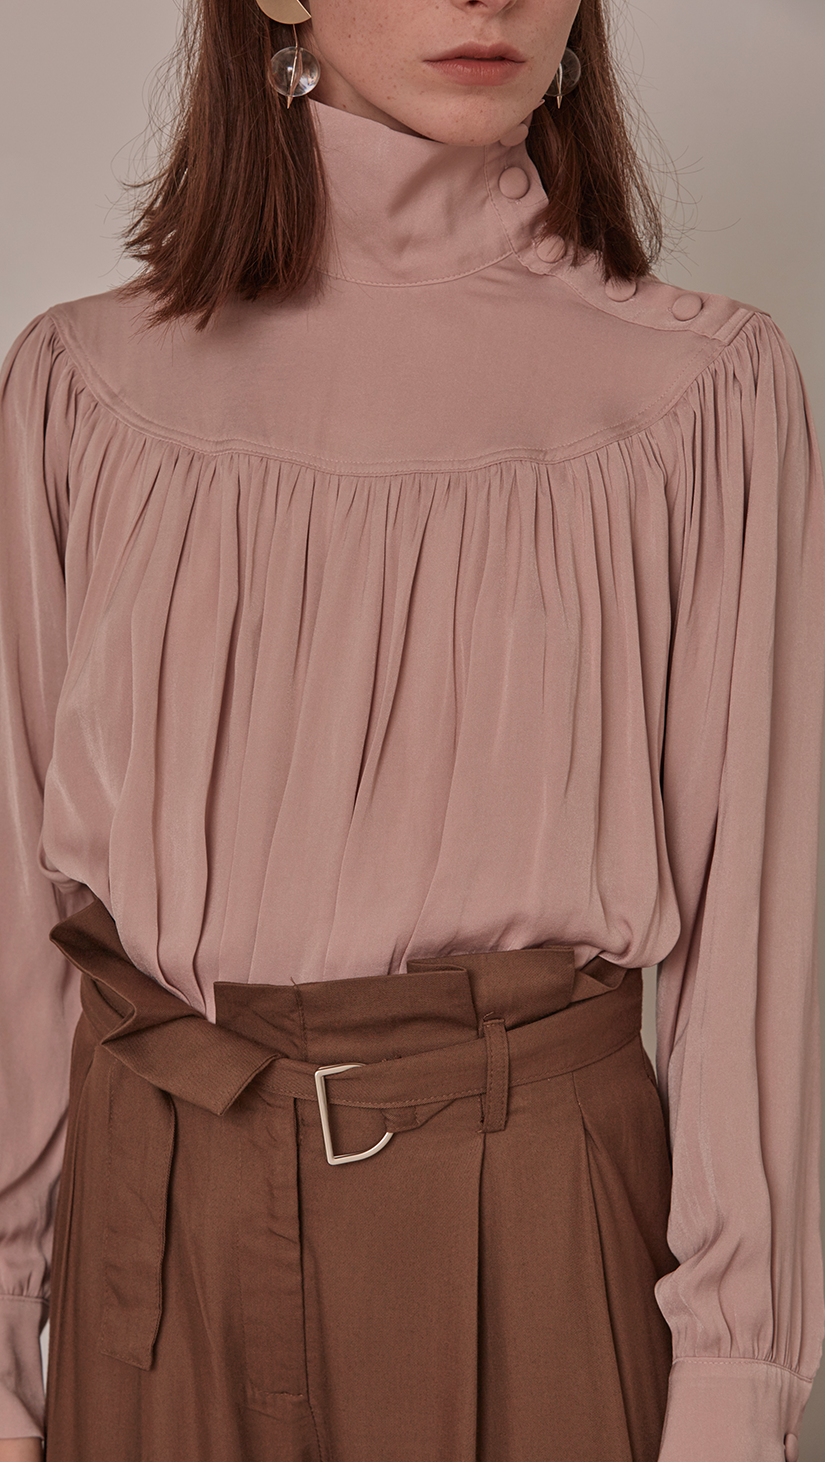 Faé Blouse in Pink. Soft-touch. High turtleneck collar with button closing, button closure at cuff. All-over raglan detailing. Designed to be loose fitting and relaxed.